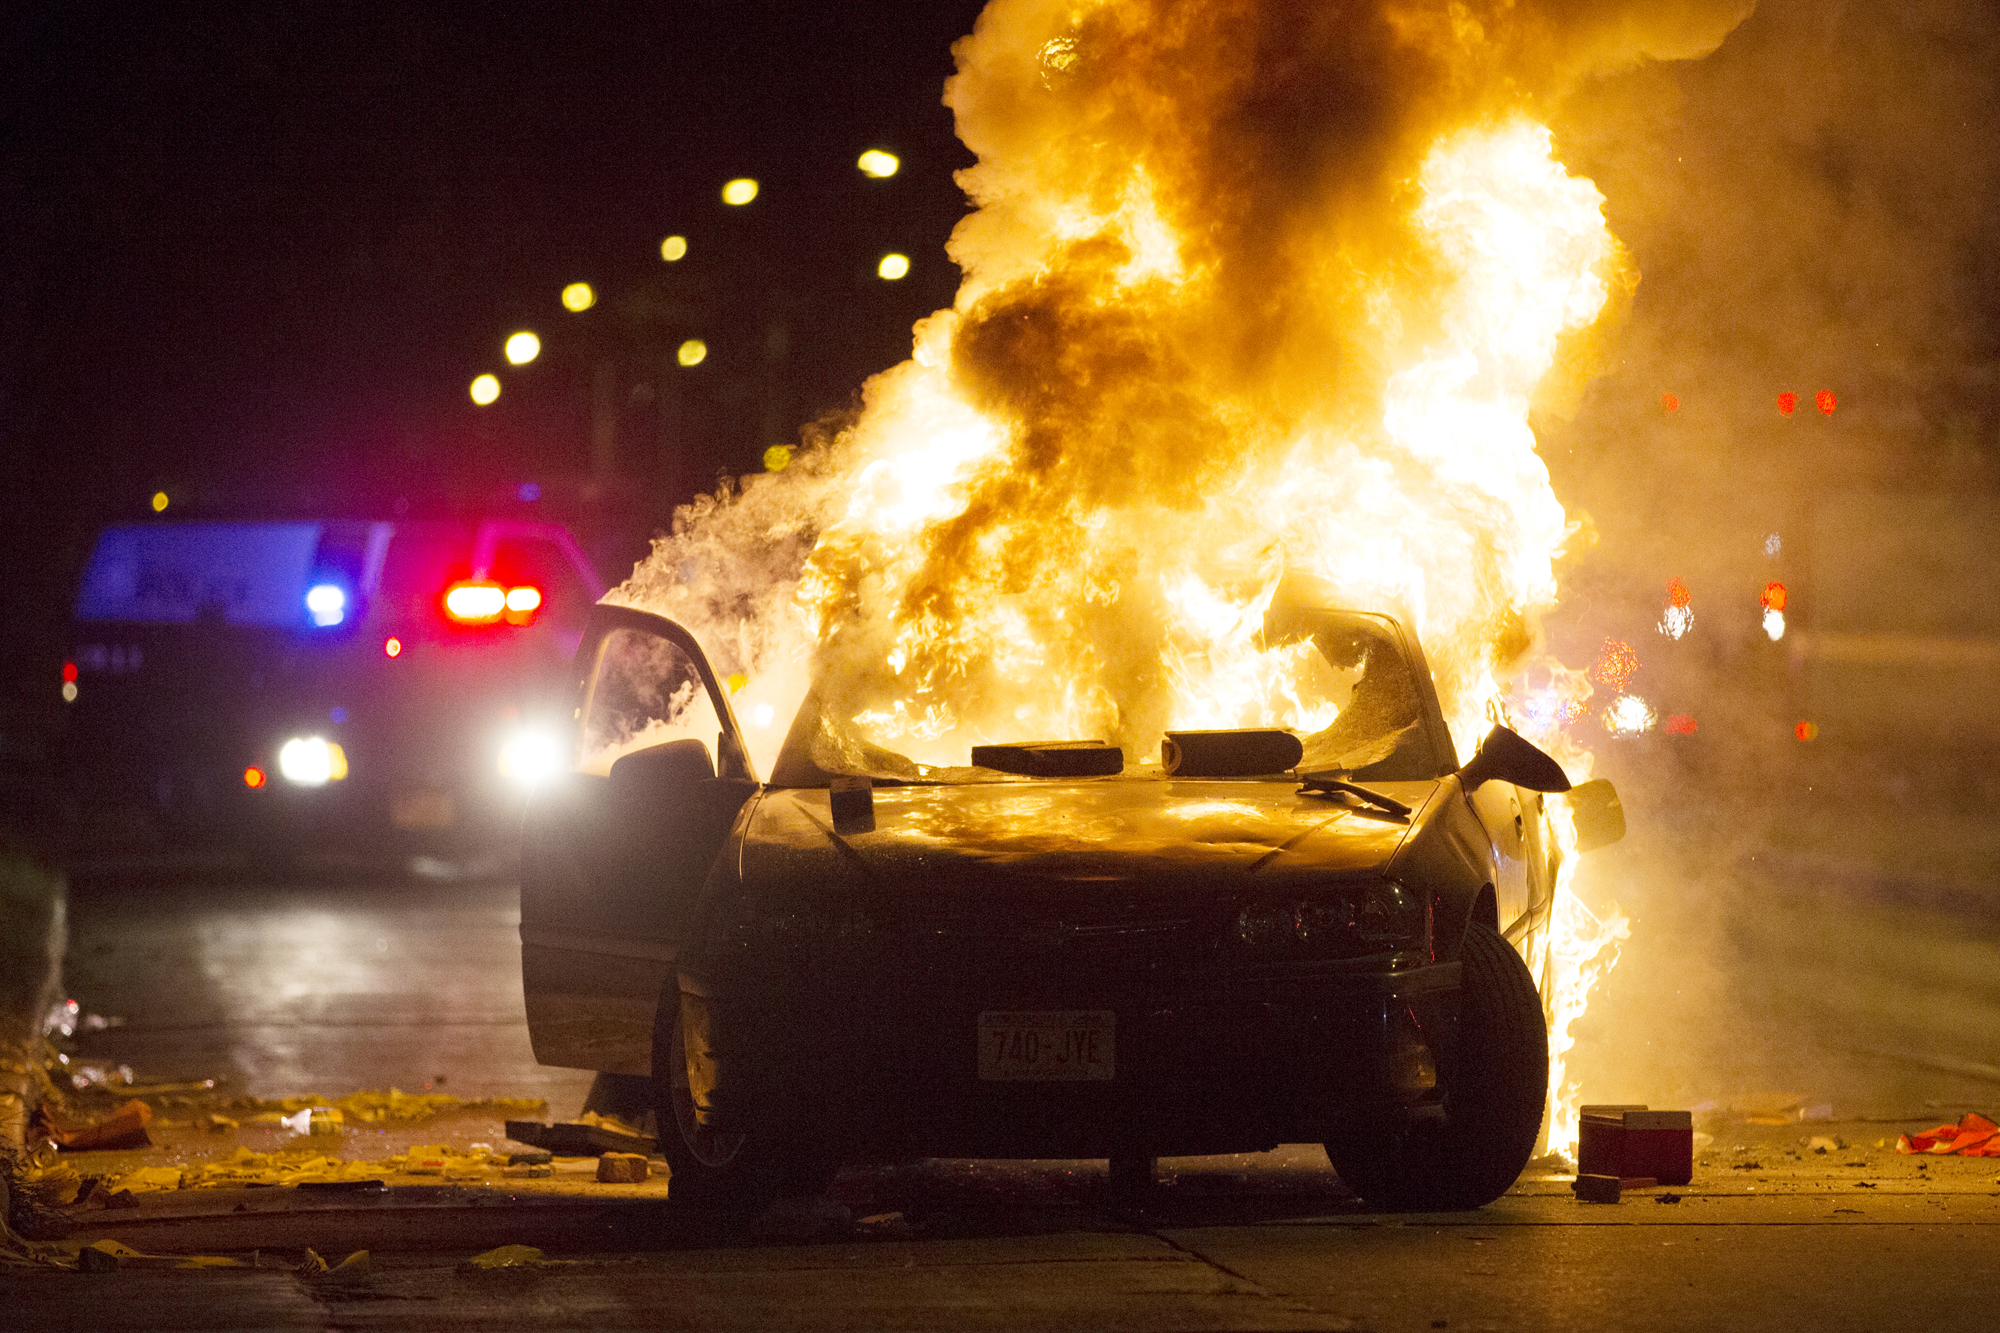 A car burns as a crowd of more than 100 people gathers following the fatal shooting of a man in Milwaukee, Saturday, Aug. 13, 2016. The Milwaukee Journal Sentinel reported that officers got in their cars to leave at one point, and some in the crowd started smashing a squad car's window, and another vehicle, pictured, was set on fire. The gathering occurred in the neighborhood where a Milwaukee officer shot and killed a man police say was armed hours earlier during a foot chase.